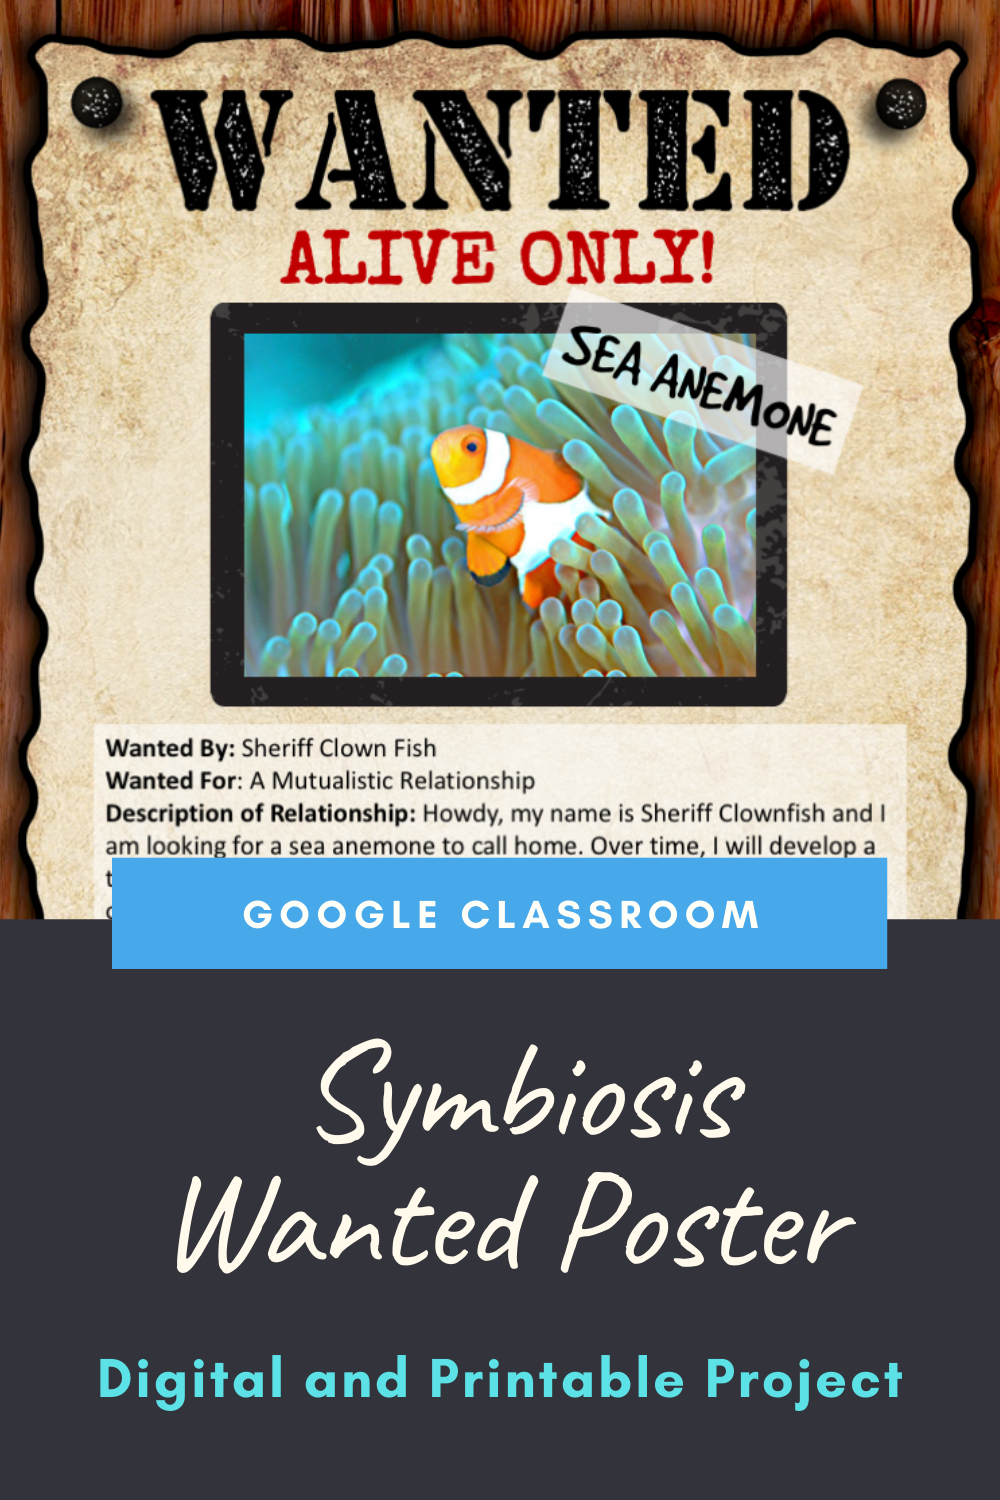 Symbiosis Project Wanted Poster Distance Learning Google Classroom Google Classroom Google Classroom Project Google Classroom Assignments [ 1500 x 1000 Pixel ]